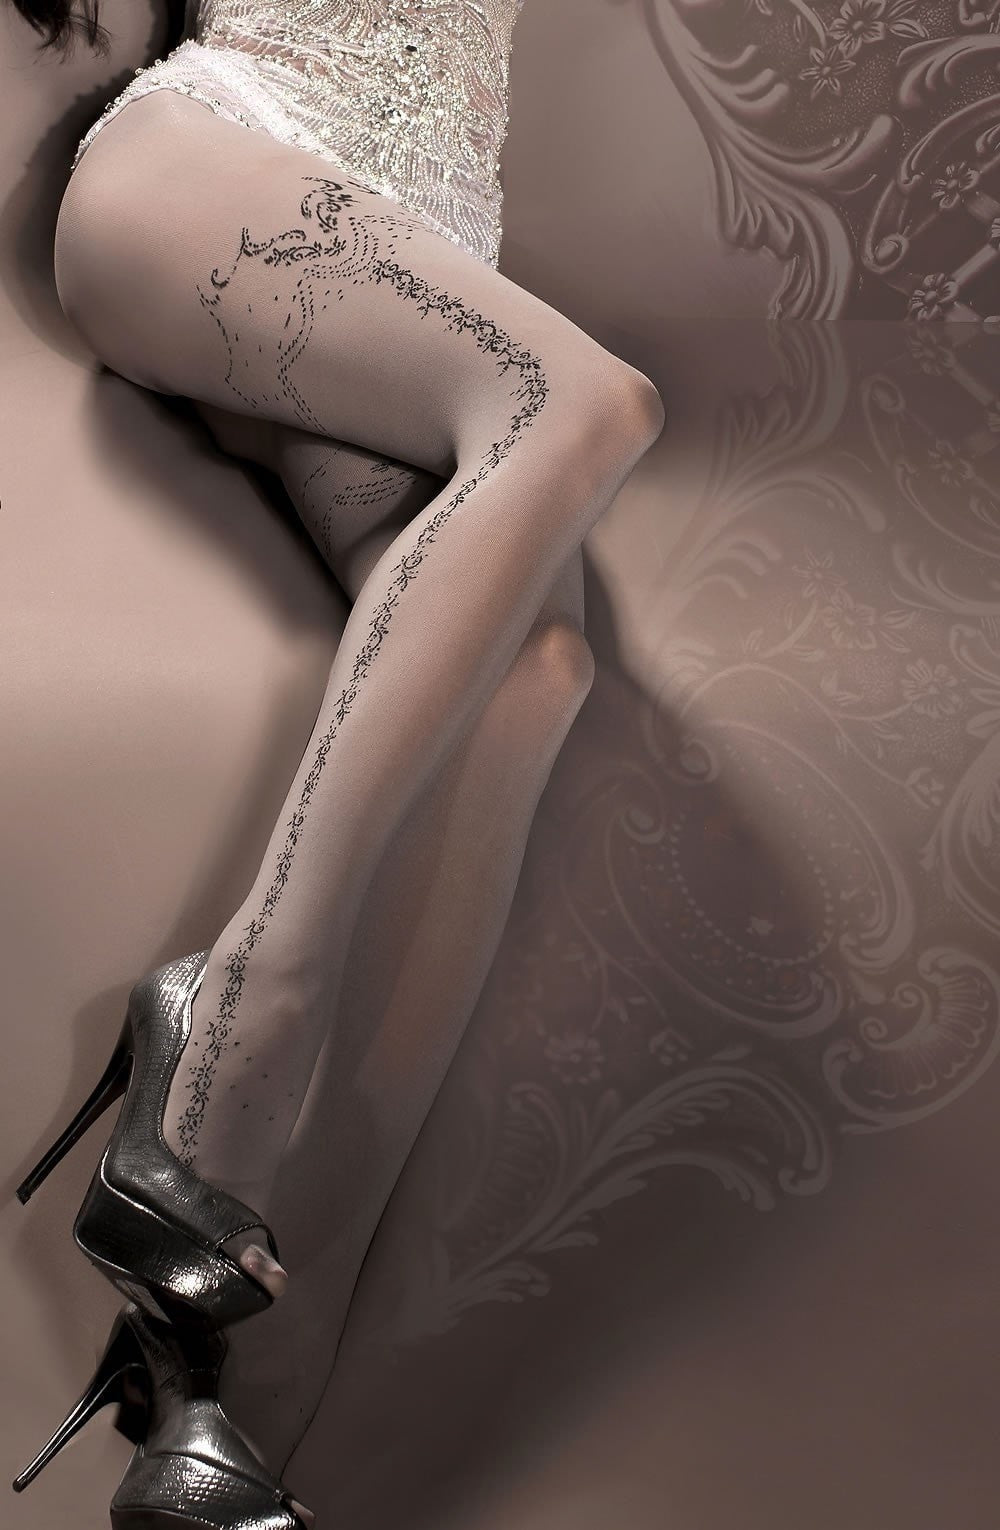 Ballerina Tights 296 (Smoke) - Tights - Ballerina - Charm and Lace Boutique